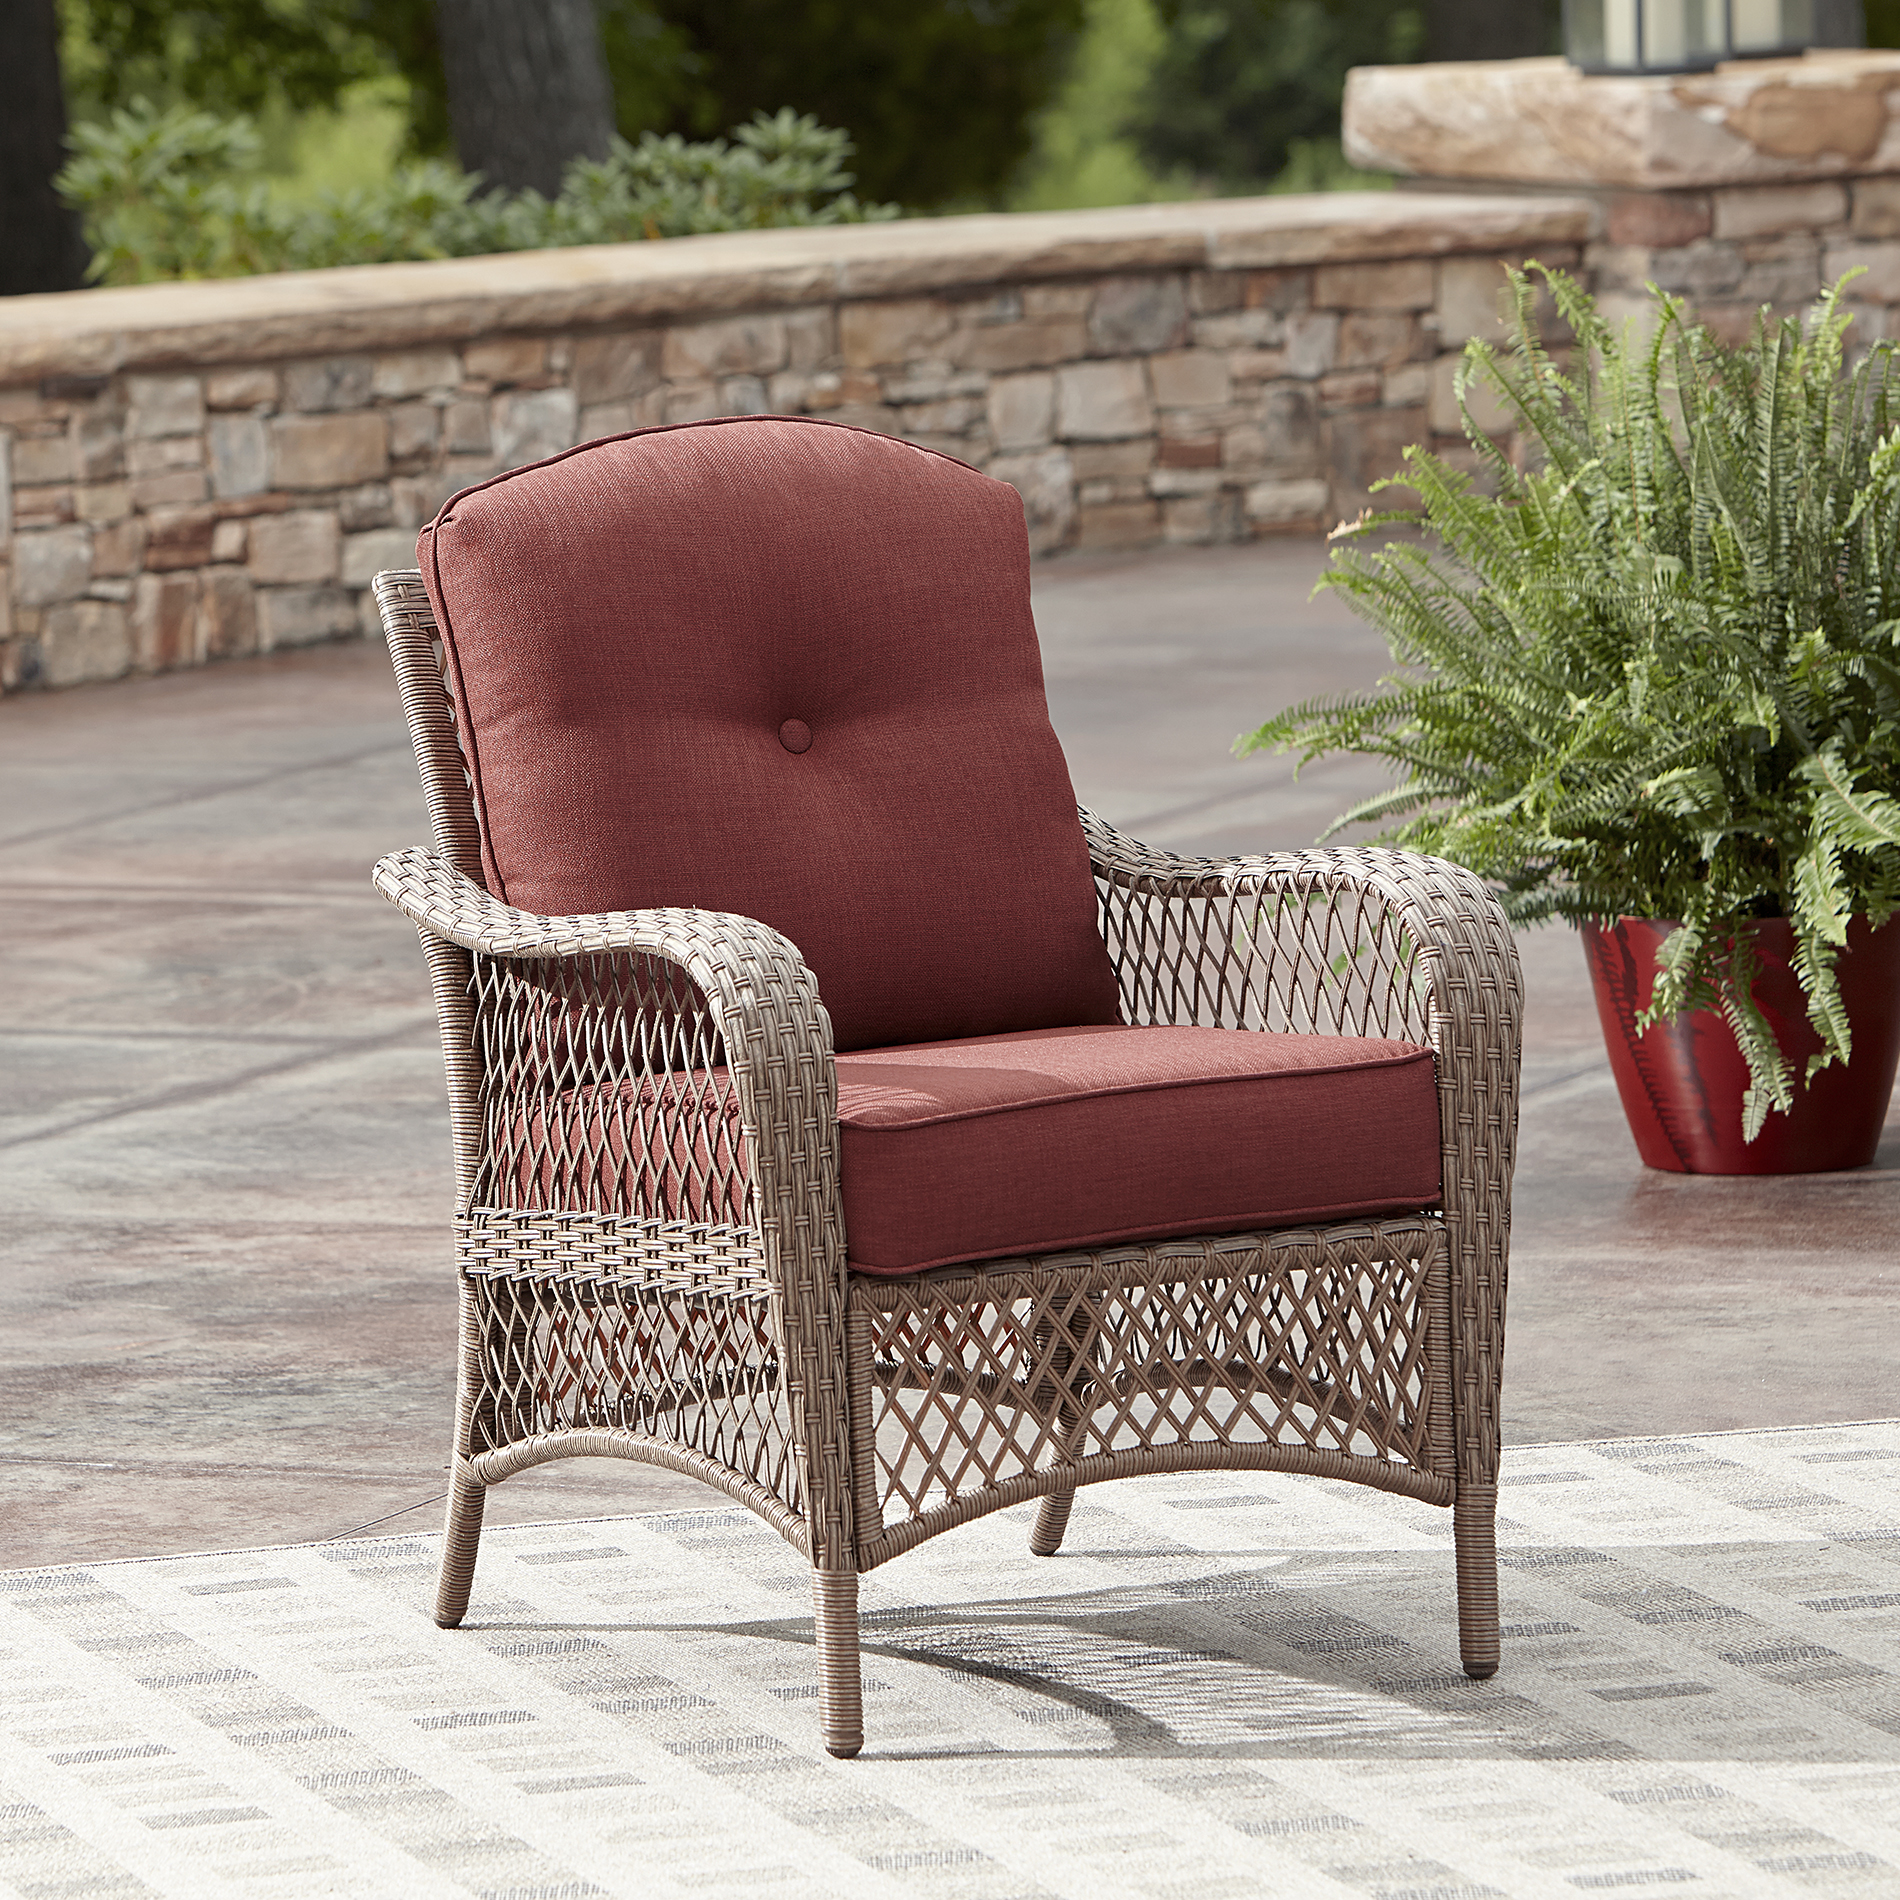 kmart chair cushions desk officeworks grand harbor jamestown chat in wine -